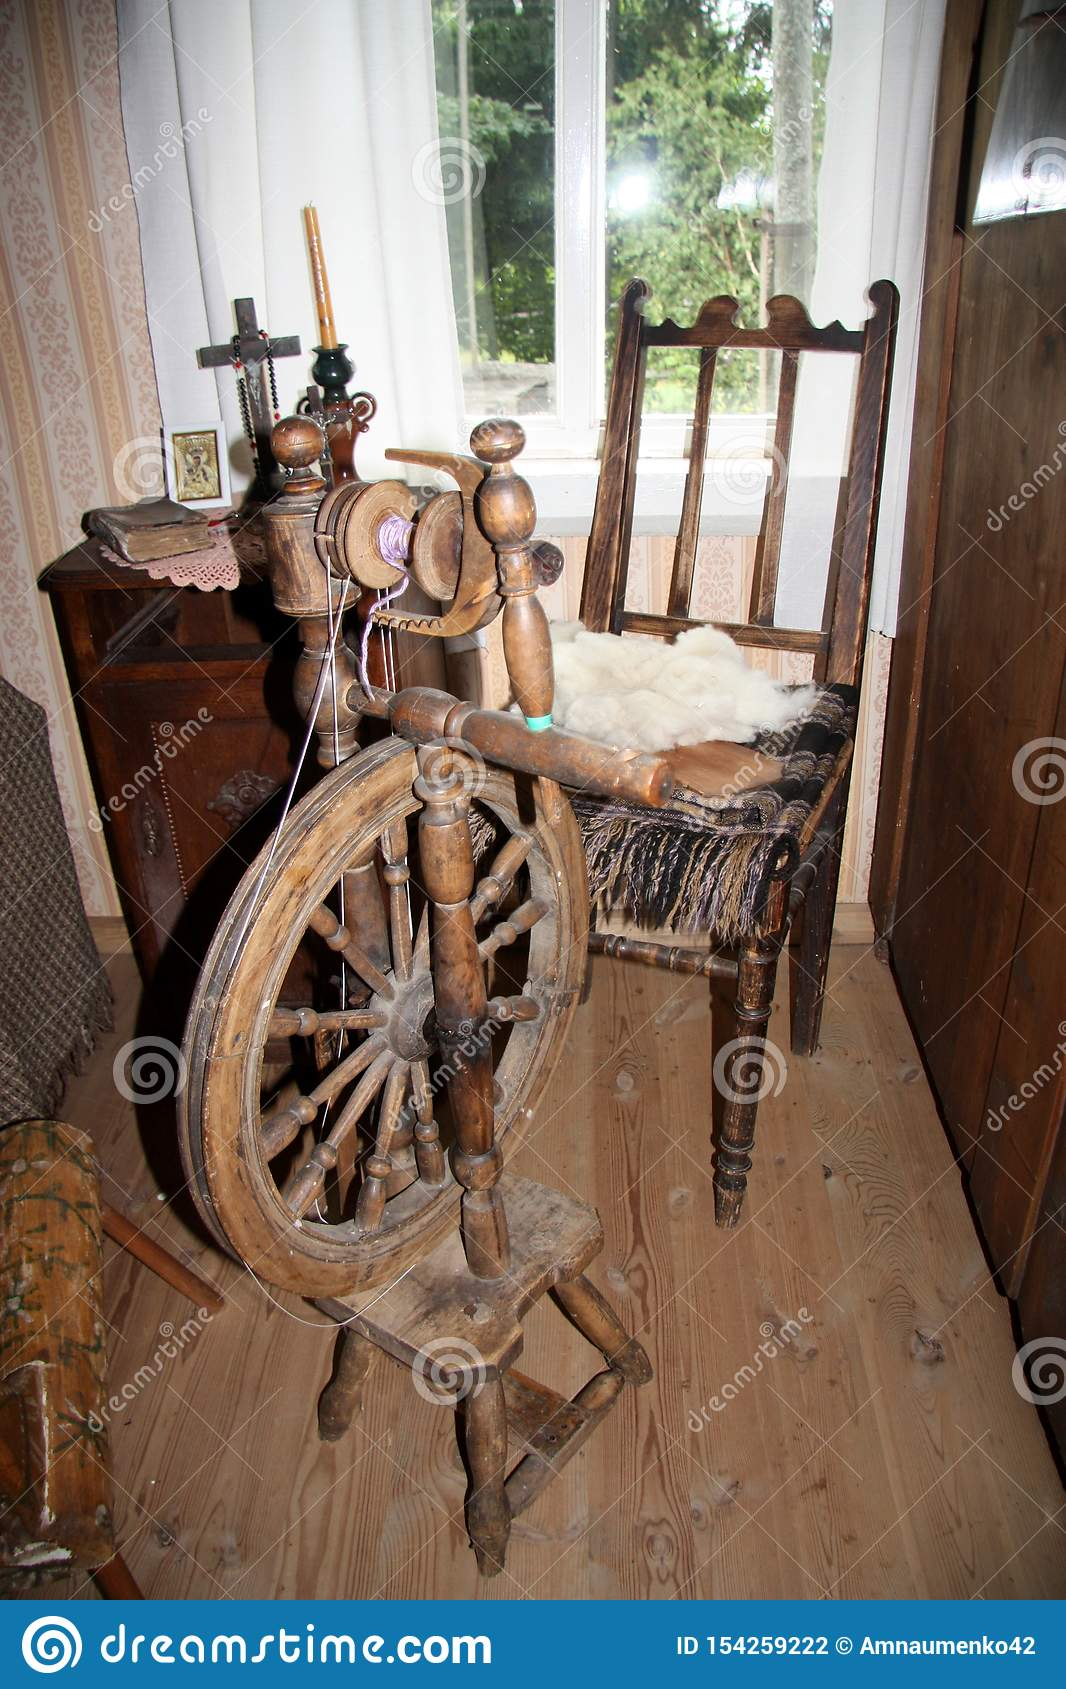 Old Spinning Wheel Museum Exhibit In Latvia Stock Photo Image Of Wooden Latvia 154259222